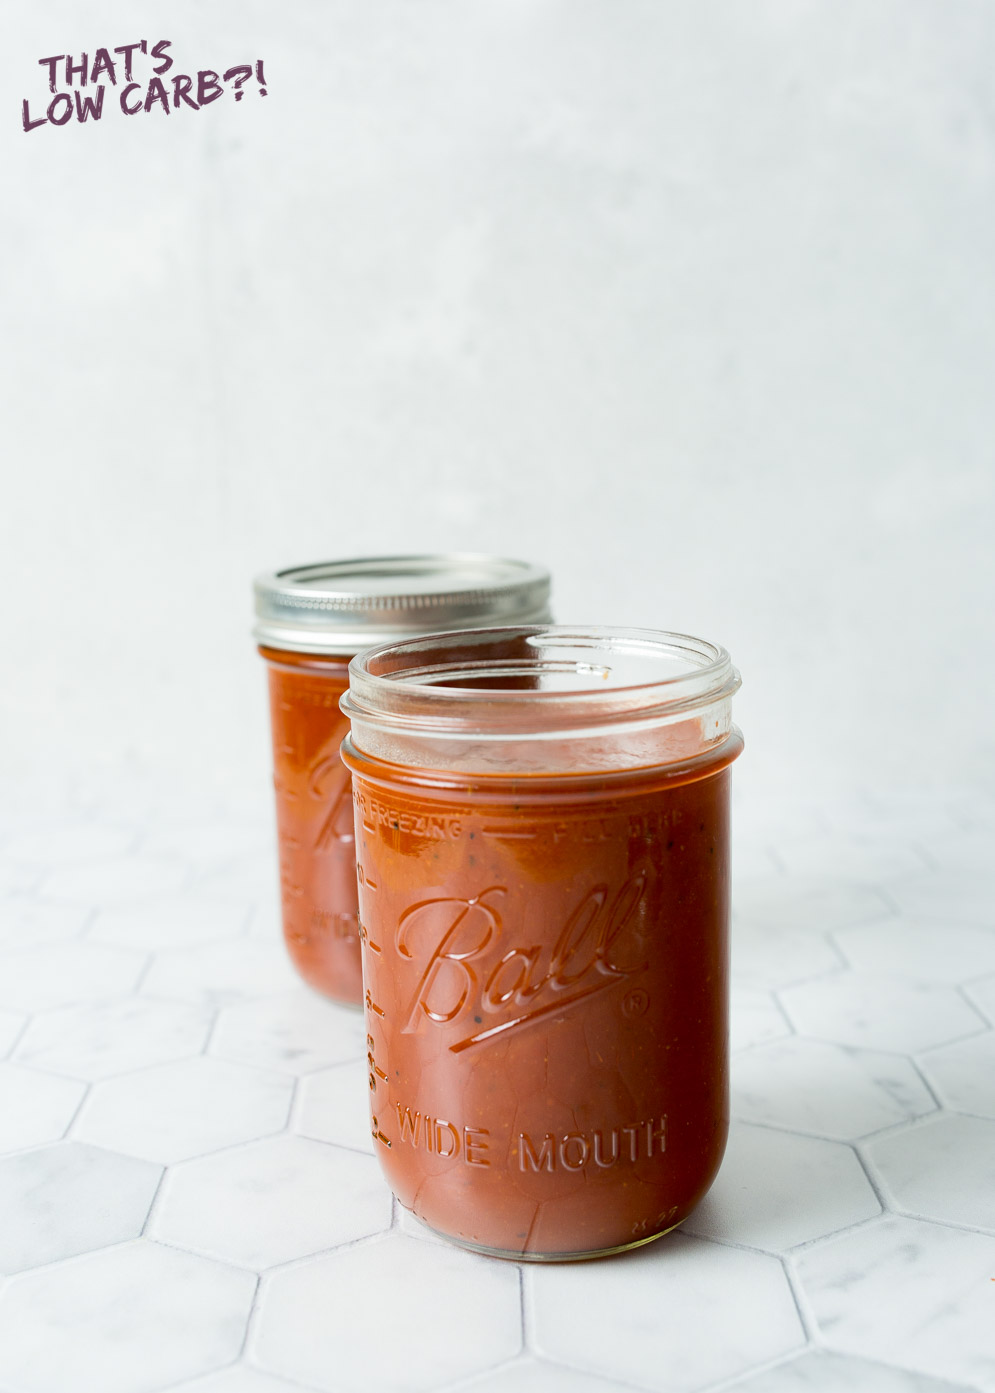 Vertical shot of low carb barbecue sauce jars filled with barbecue sauce in mason jars with white background